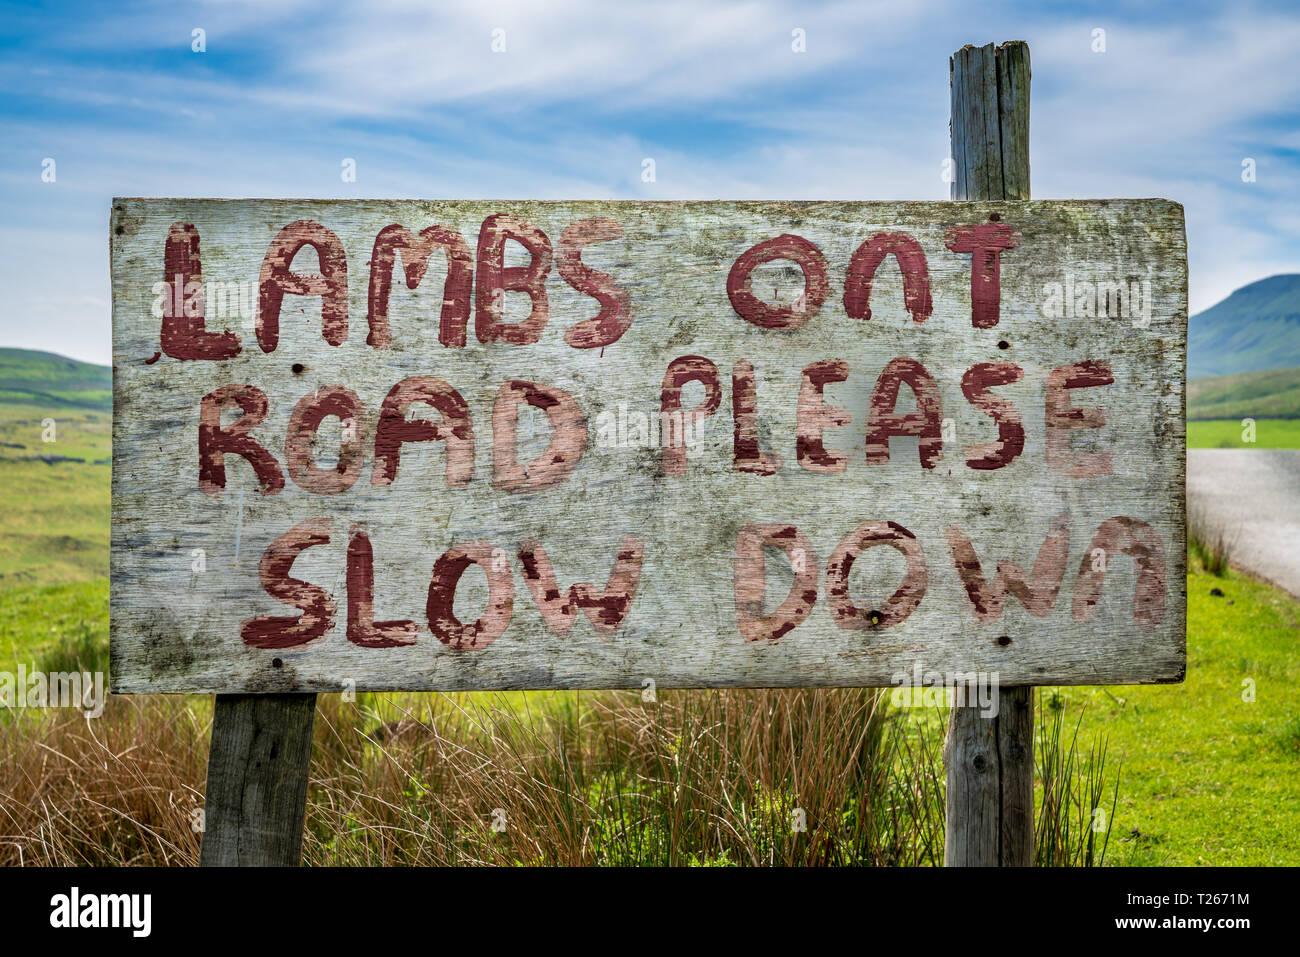 Sign: Lambs on Road please slow down, seen near Halton Gill, North Yorkshire, England, UK - Stock Image